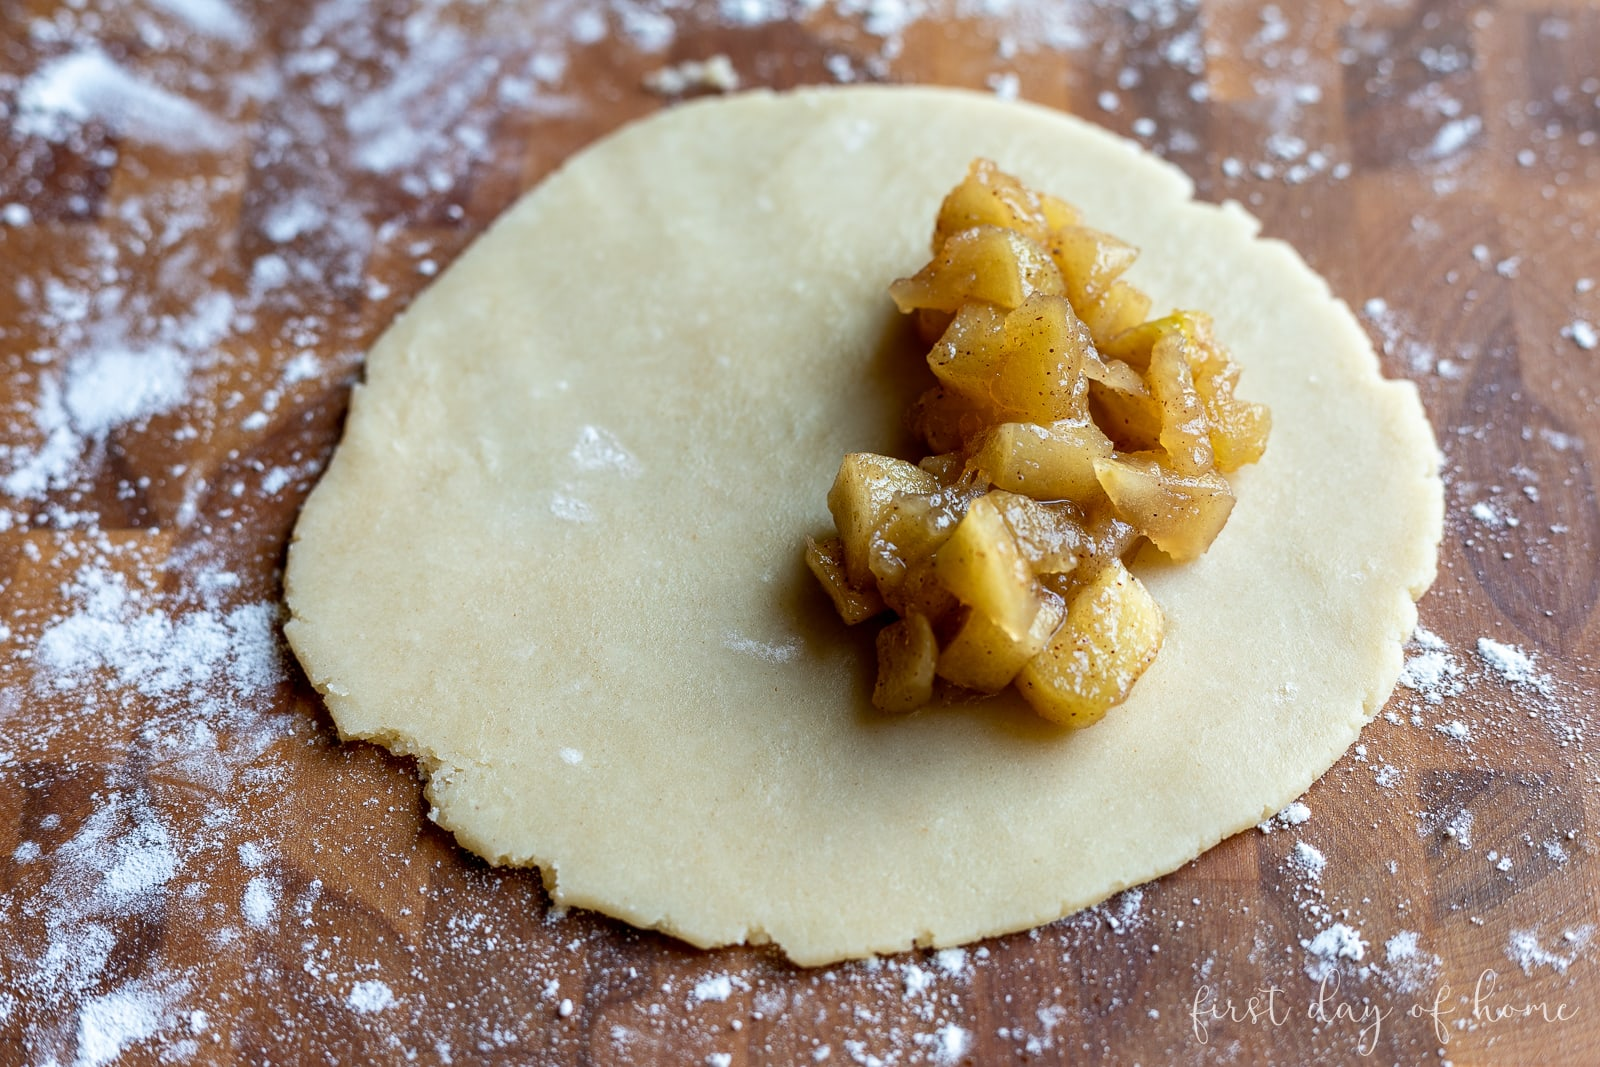 Apple filling on round empanada dough before pressing closed